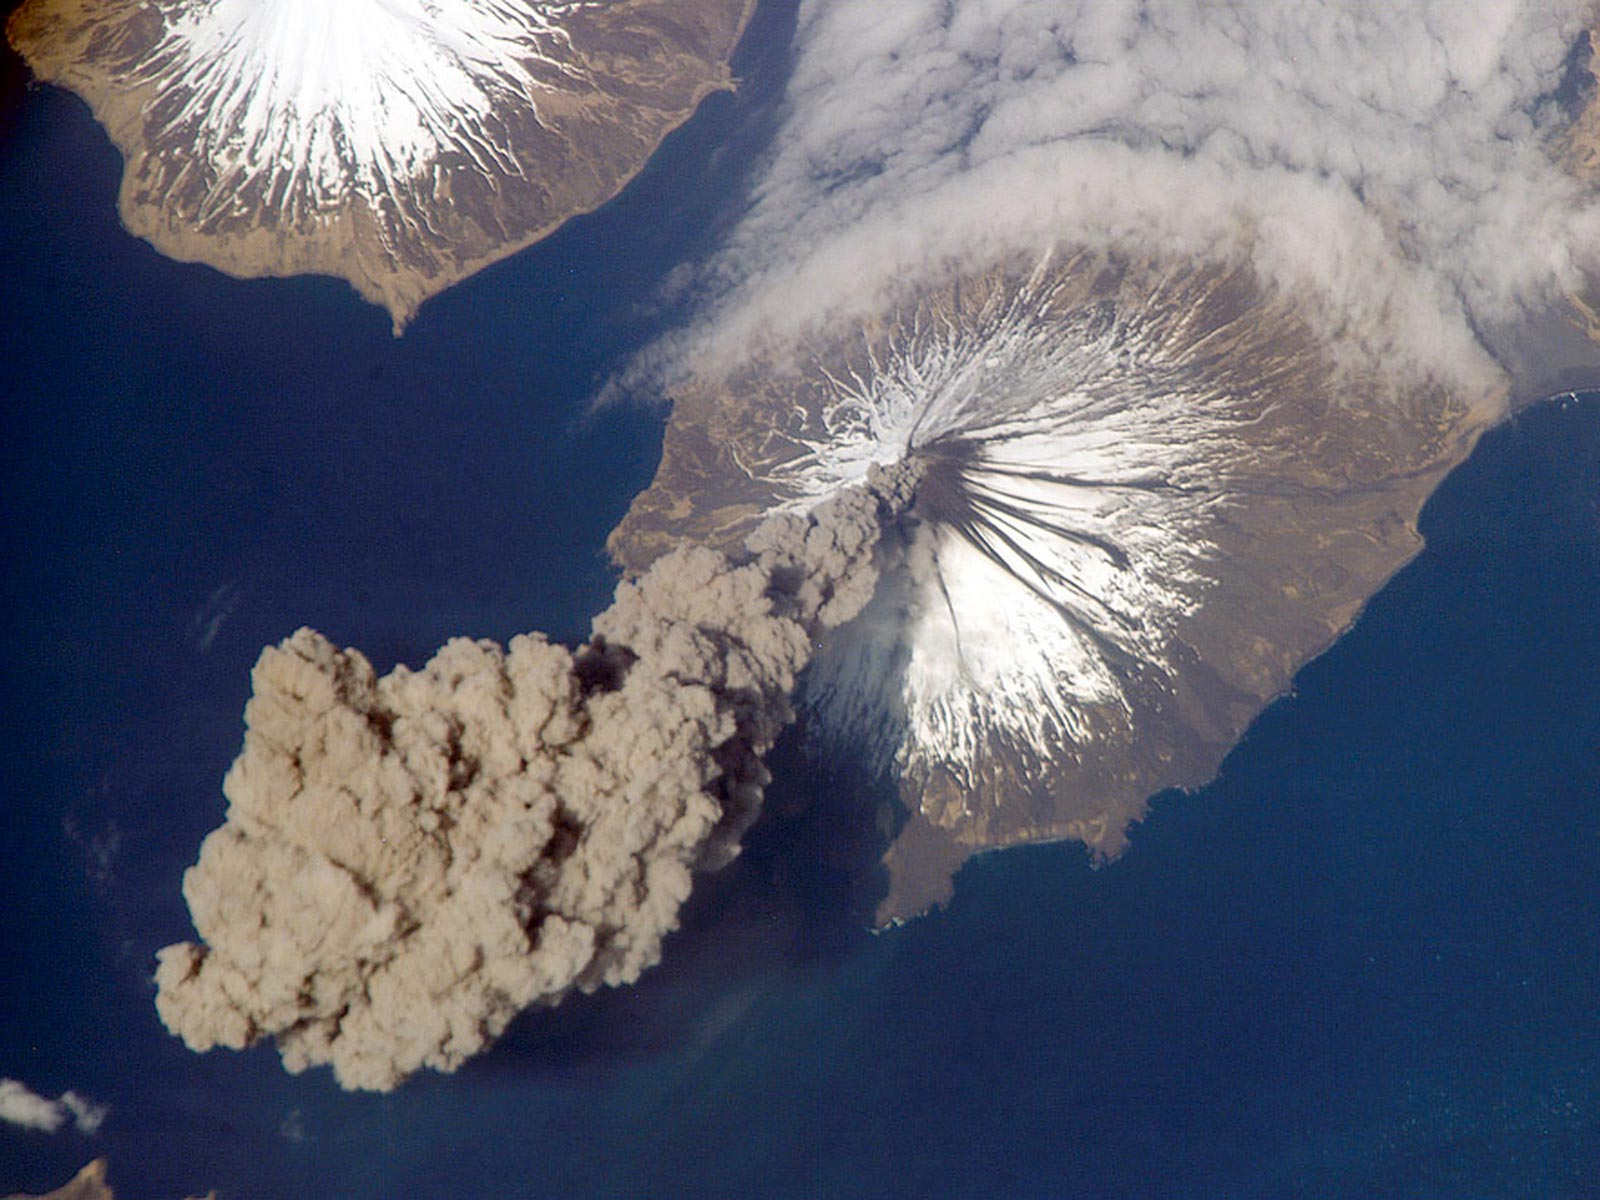 NASA - Cleveland Volcano, Aleutian Islands